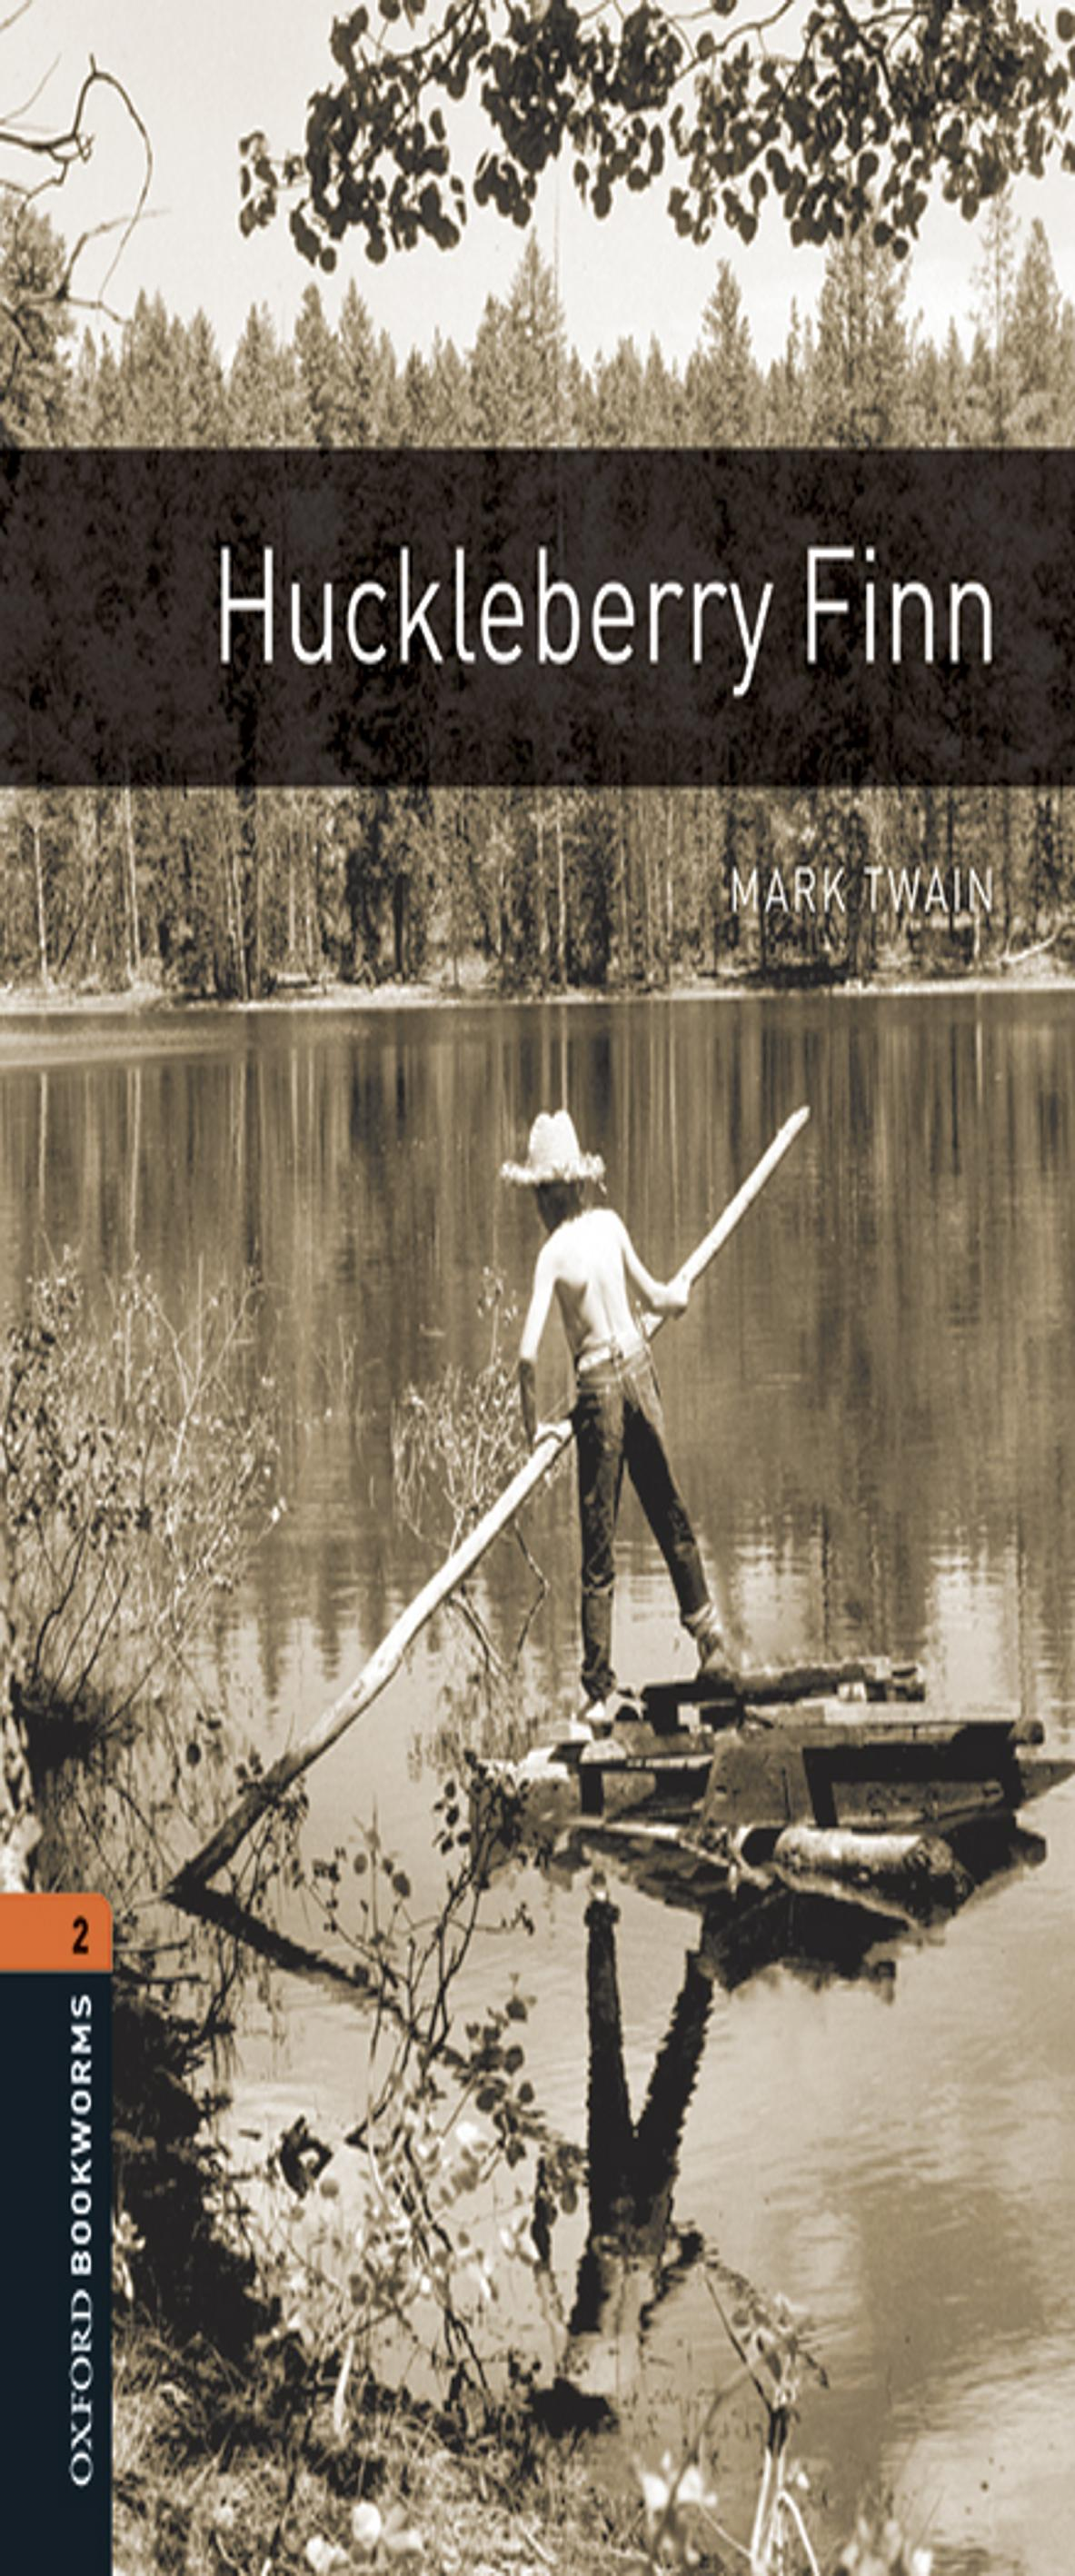 OBL2 - 15 HUCKLEBERRY FINN MP3 PK